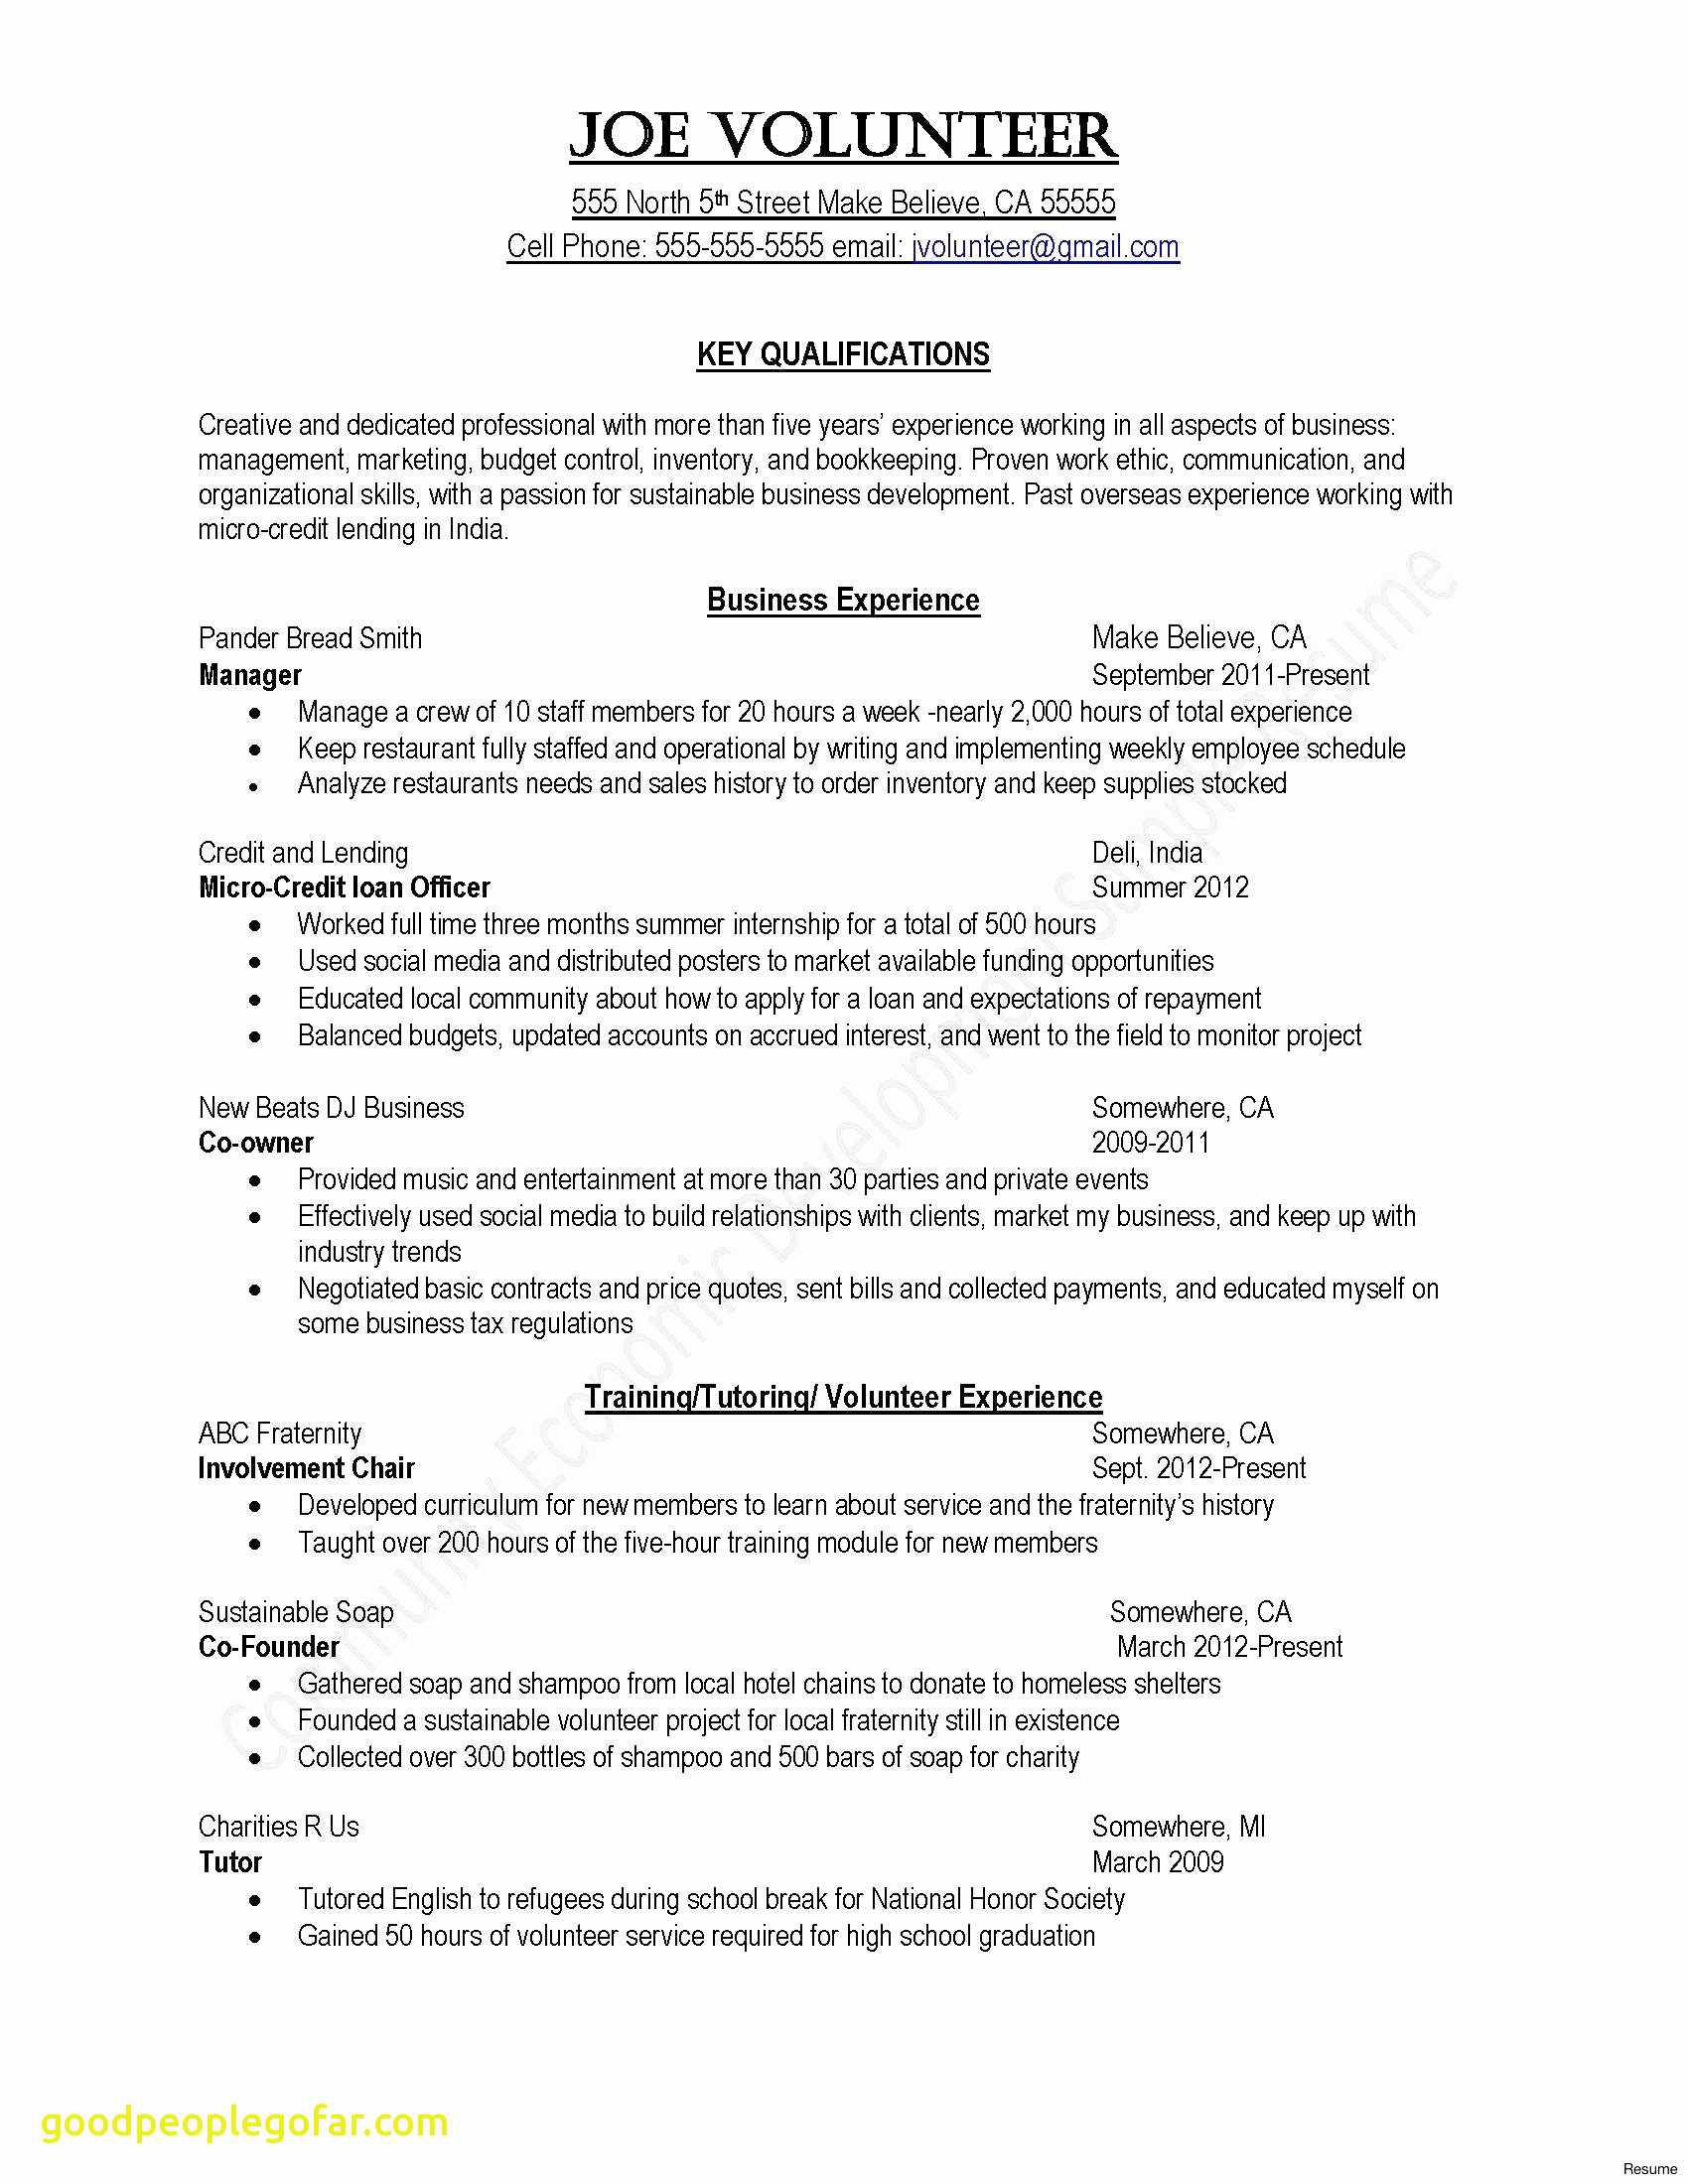 Chronological order Resume Template - Awesome High School Resume Template for College Application